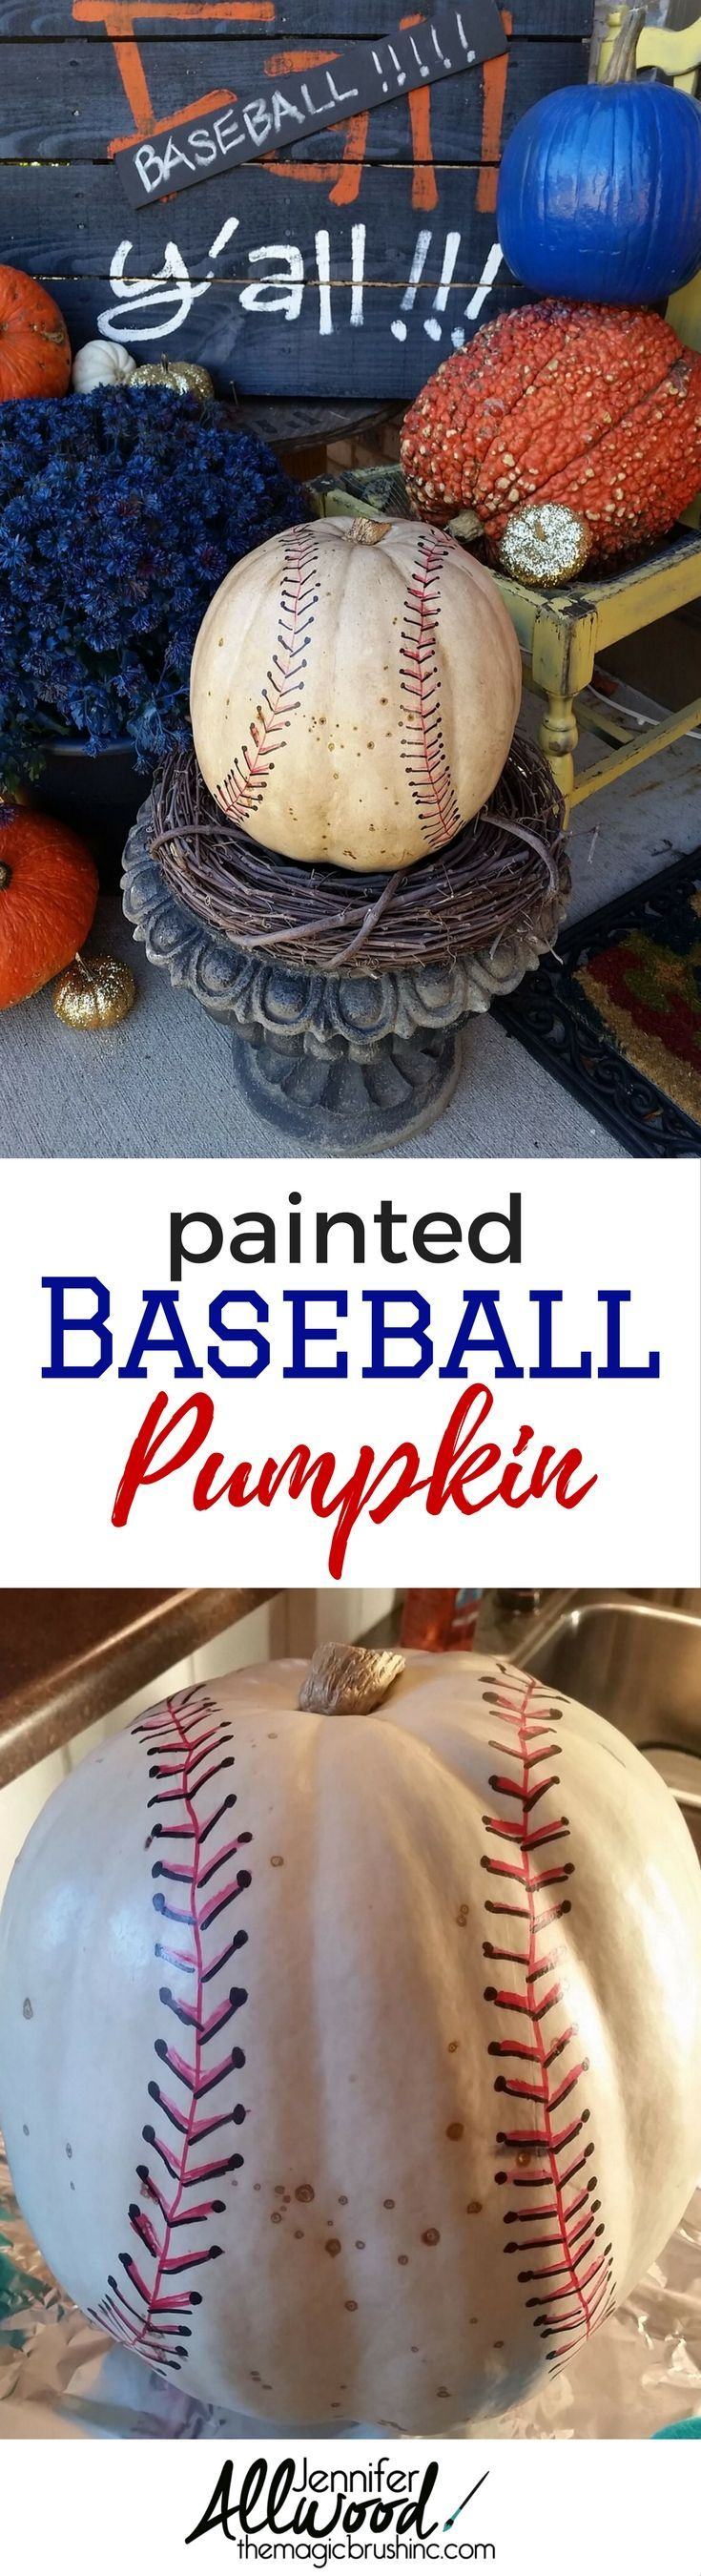 Baseball Pumpkin Fall Decorating Ideas for sports fans